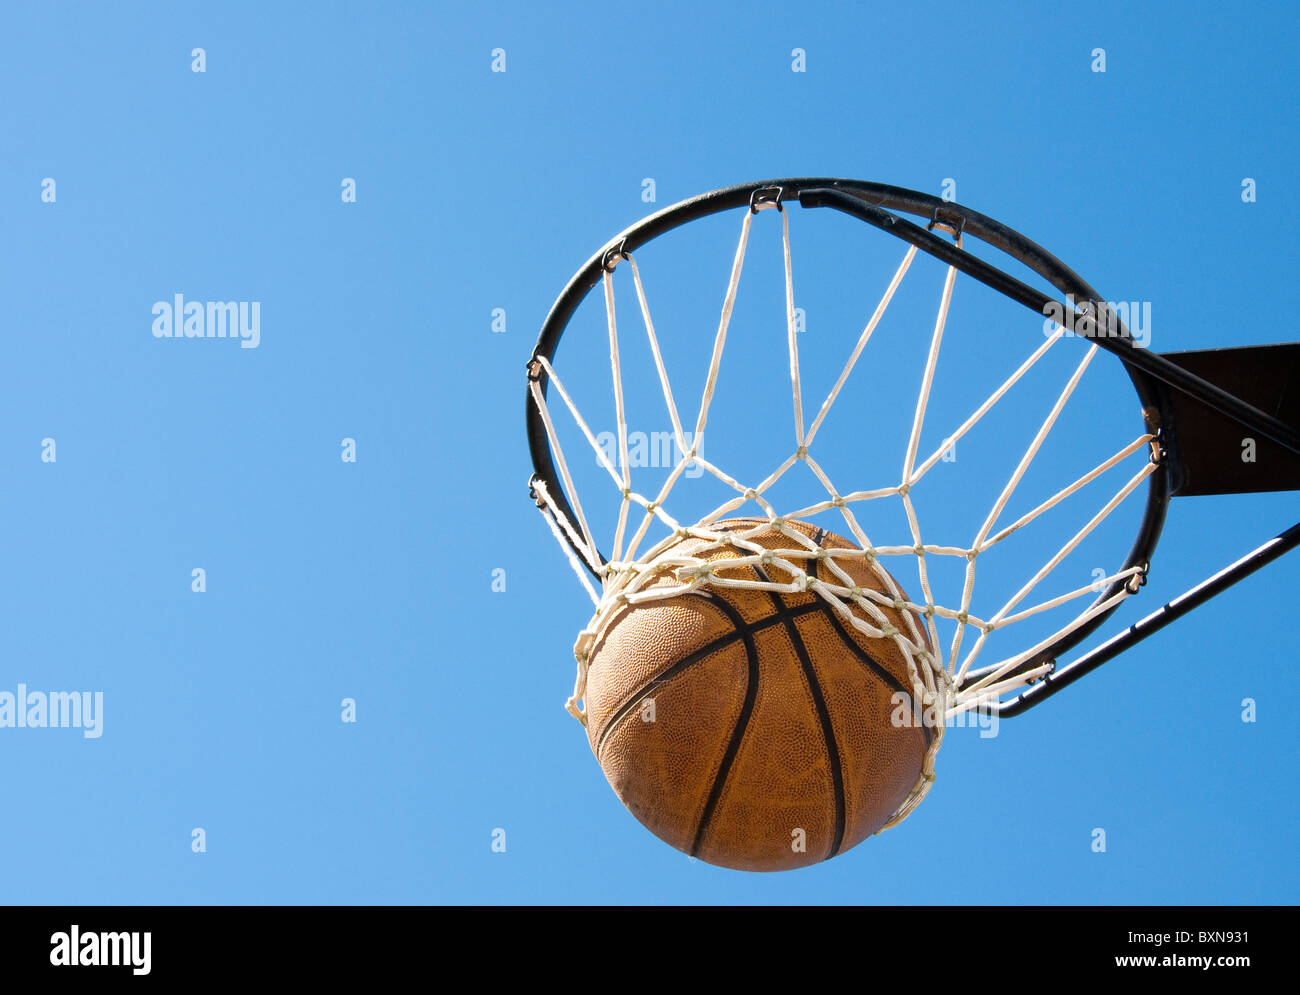 Basketball in the net - abstract concept of success, reaching one's goals - Stock Image